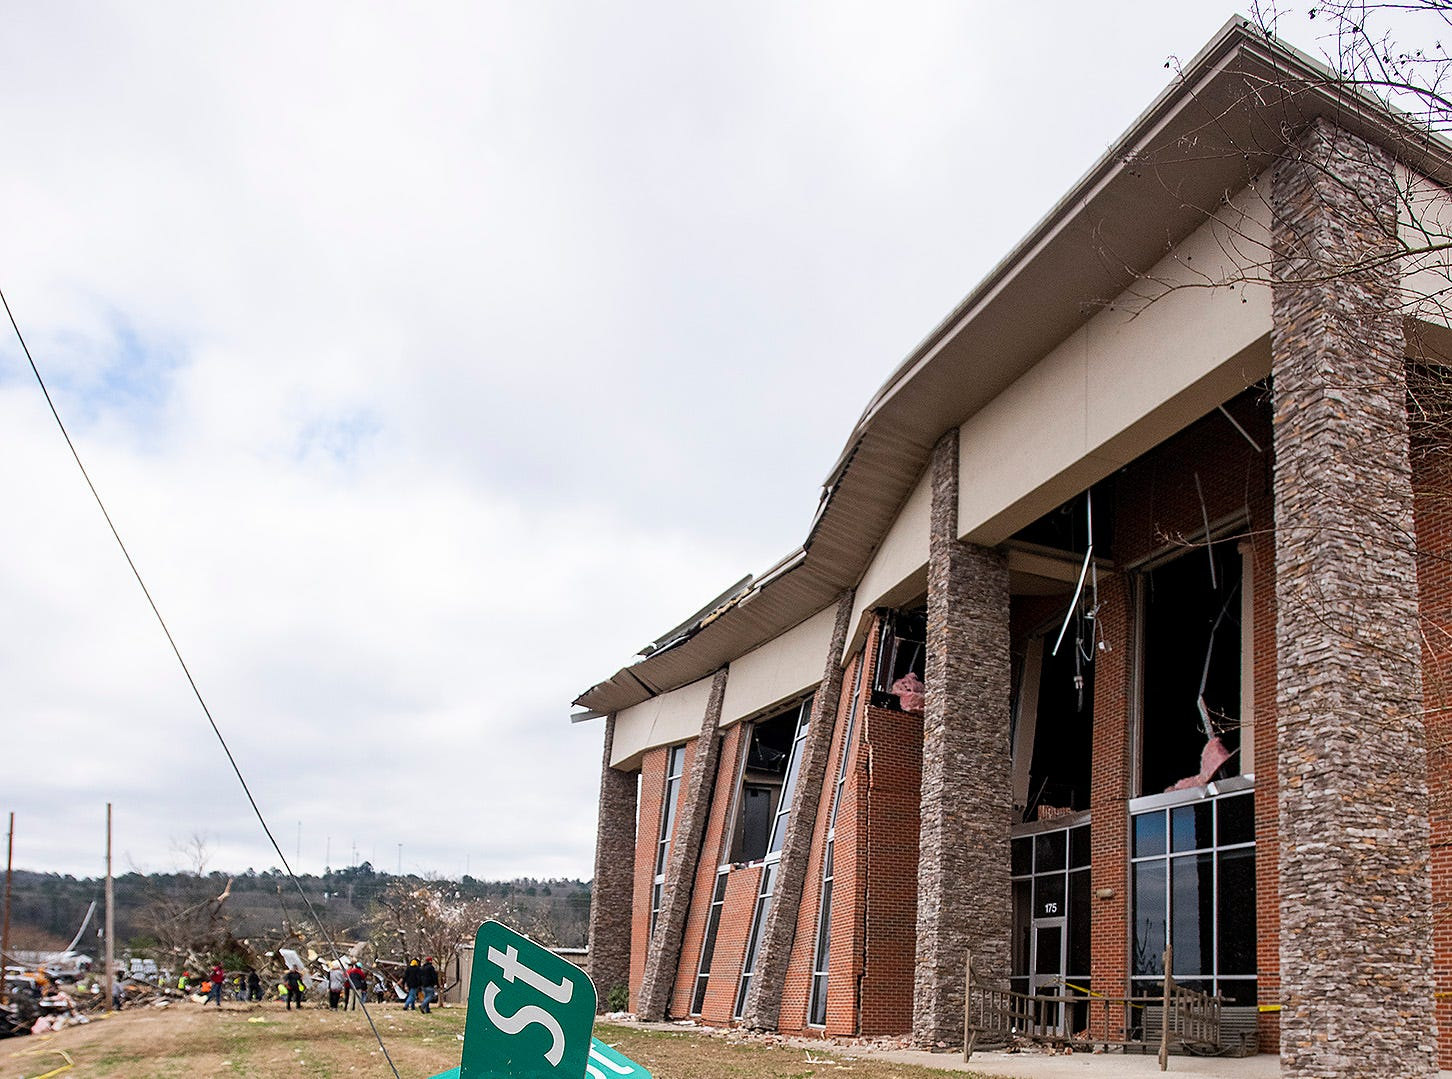 Damage is shown on Sunday January 20, 2019, after a tornado hit Wetumpka, Ala., on Saturday afternoon.